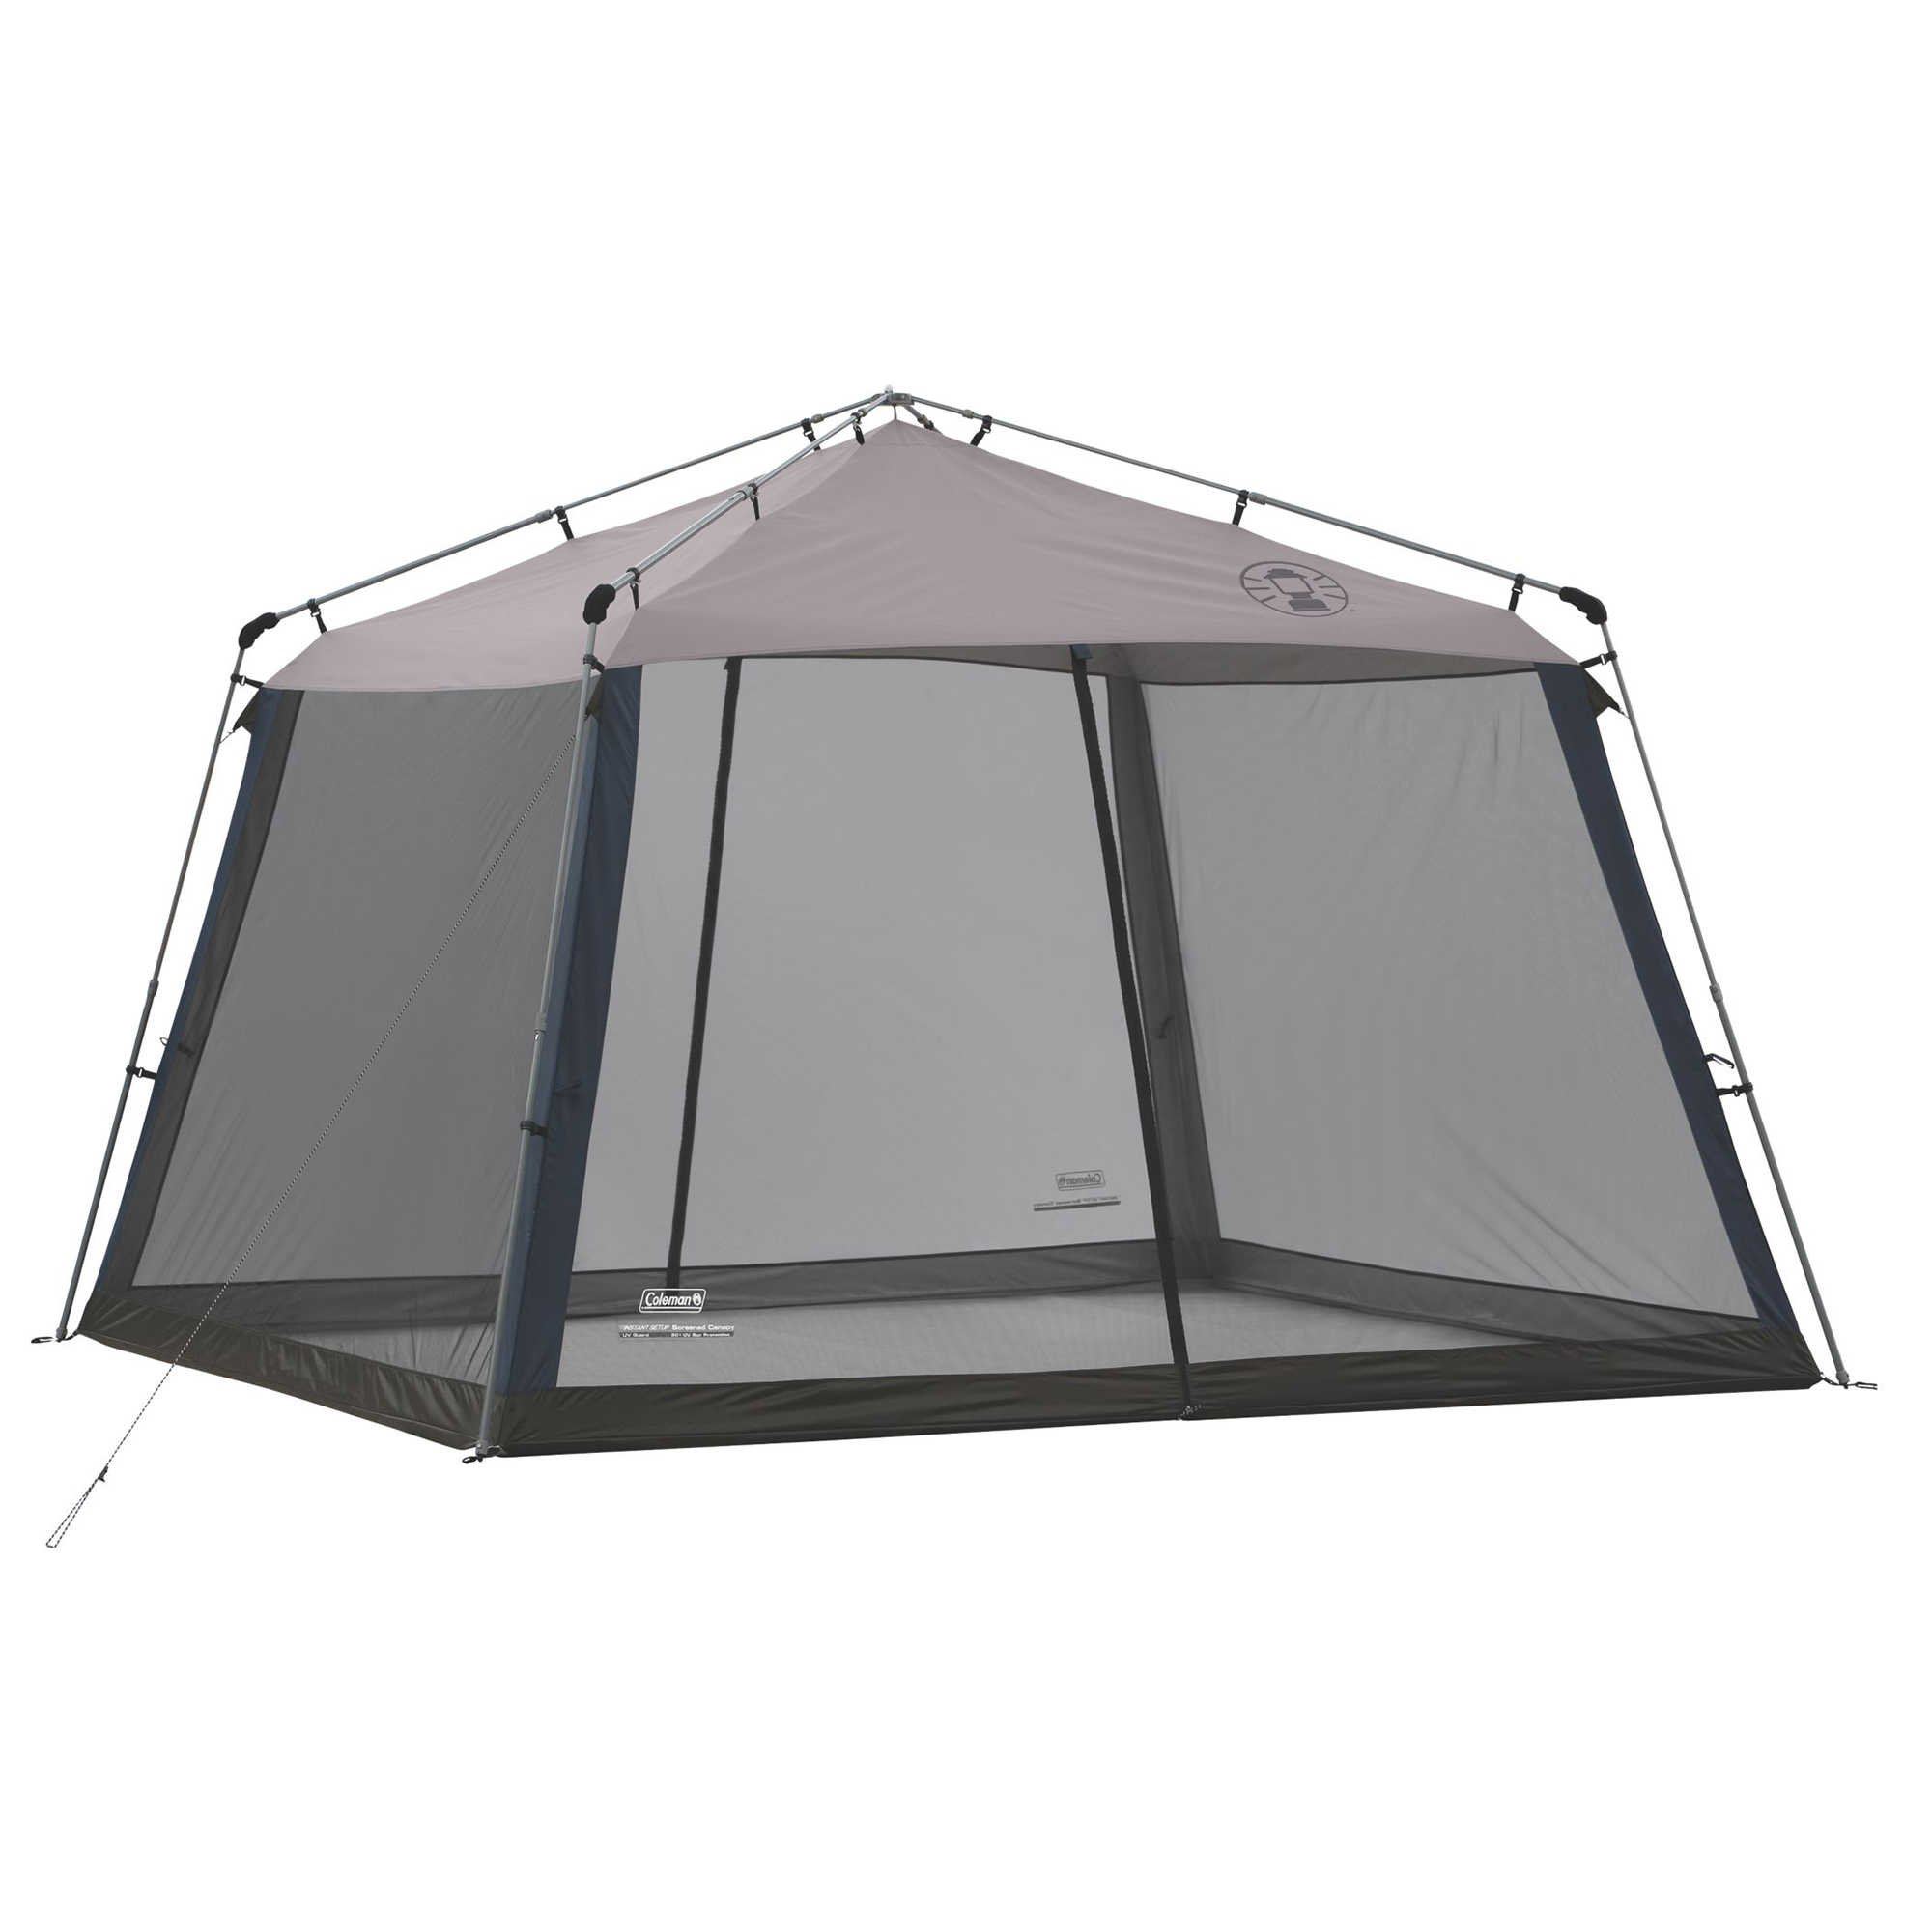 Durable Easy Set Up And Easy Access 11Ft x 11Ft Coleman Instant Screen House With UVGuard Protection, Navy/Grey by Generic (Image #2)